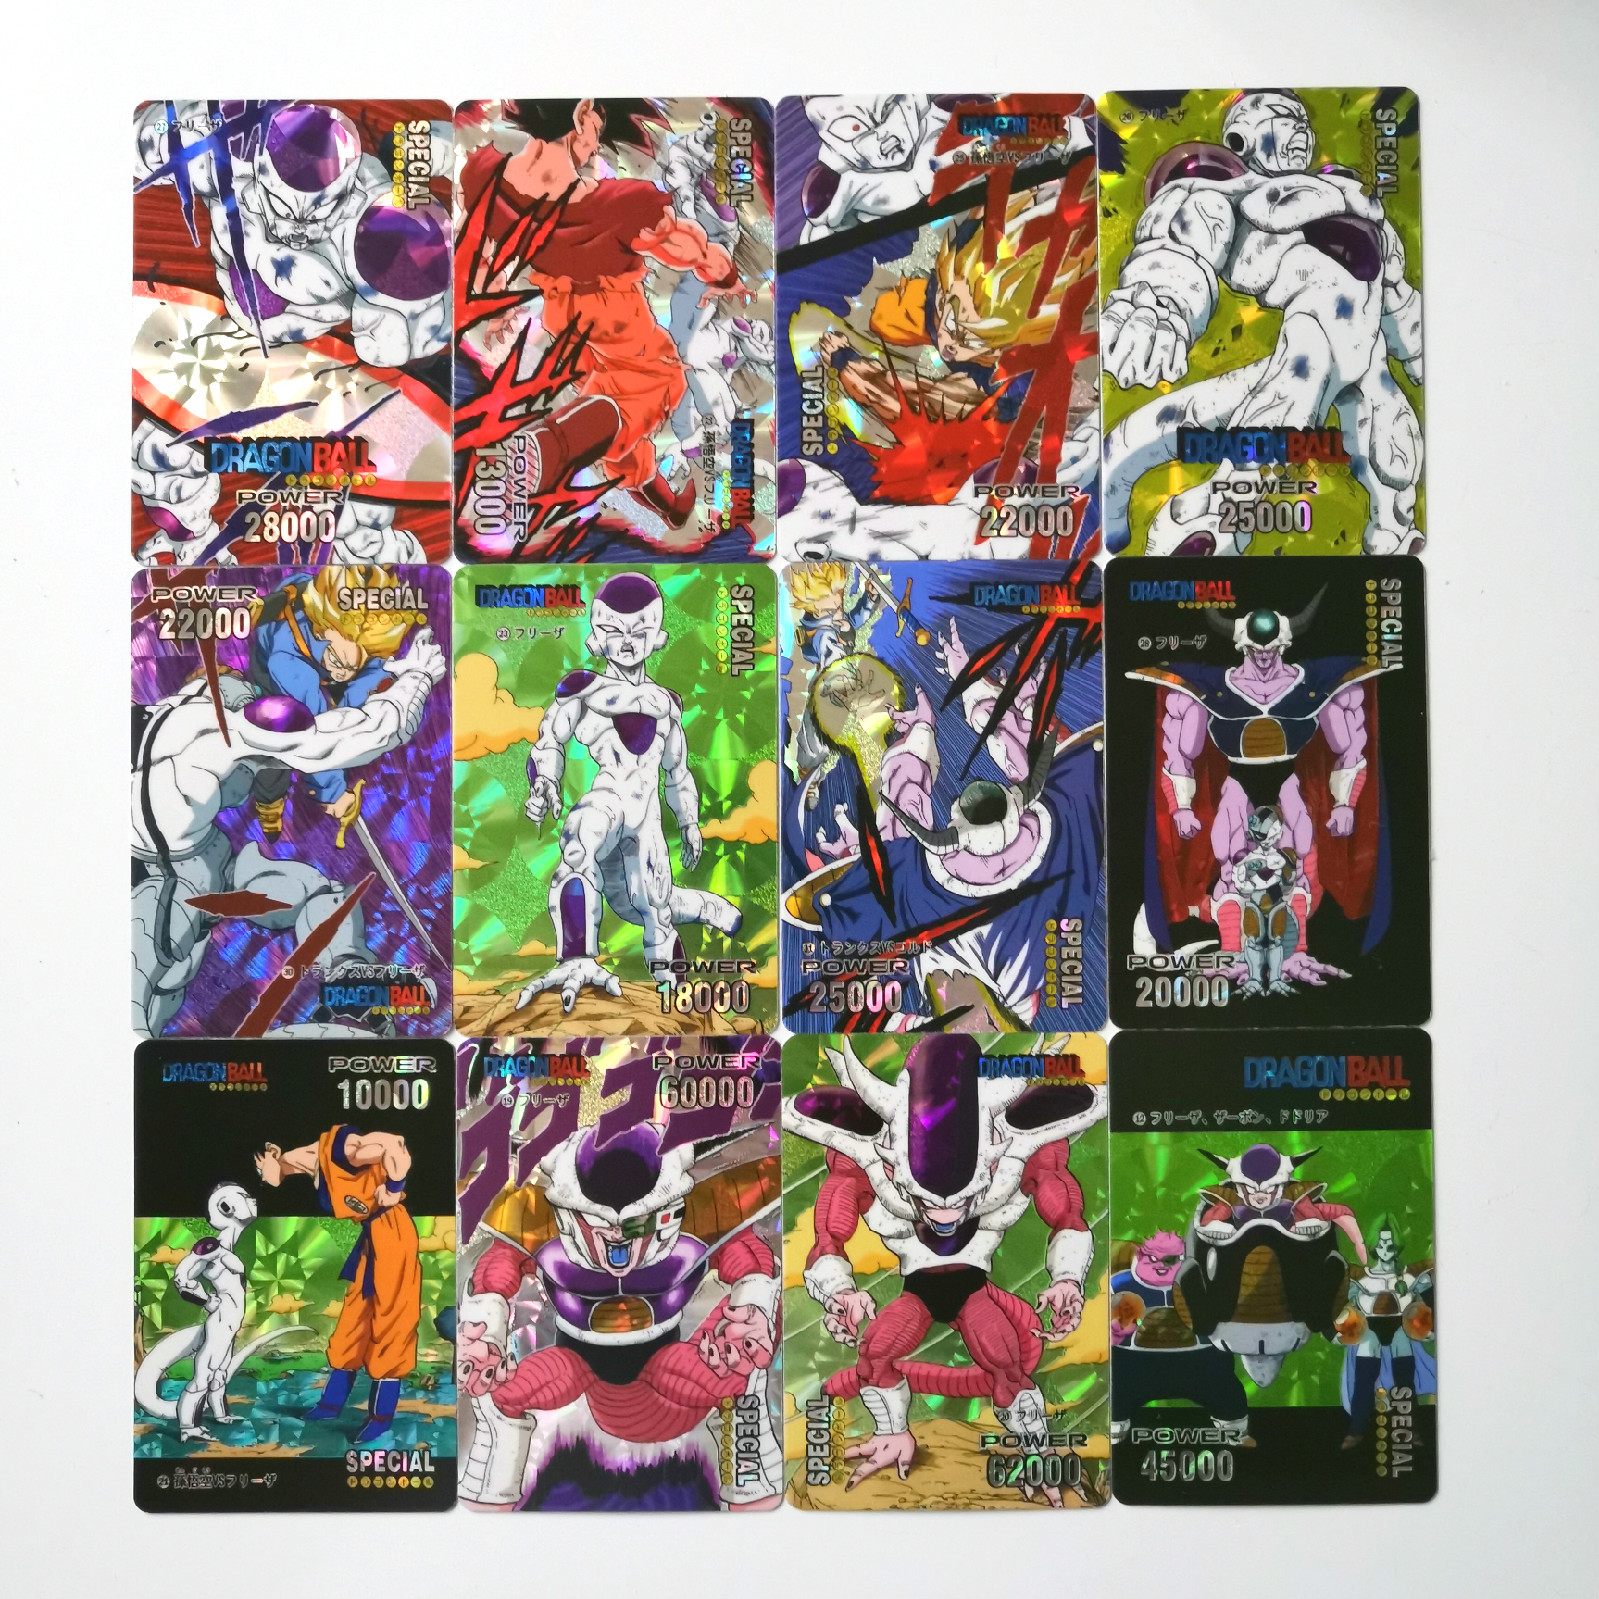 63pcs Super Dragon Ball Z Heroes Pasteable Battle Card Ultra Instinct Goku Vegeta Game Collection Cards